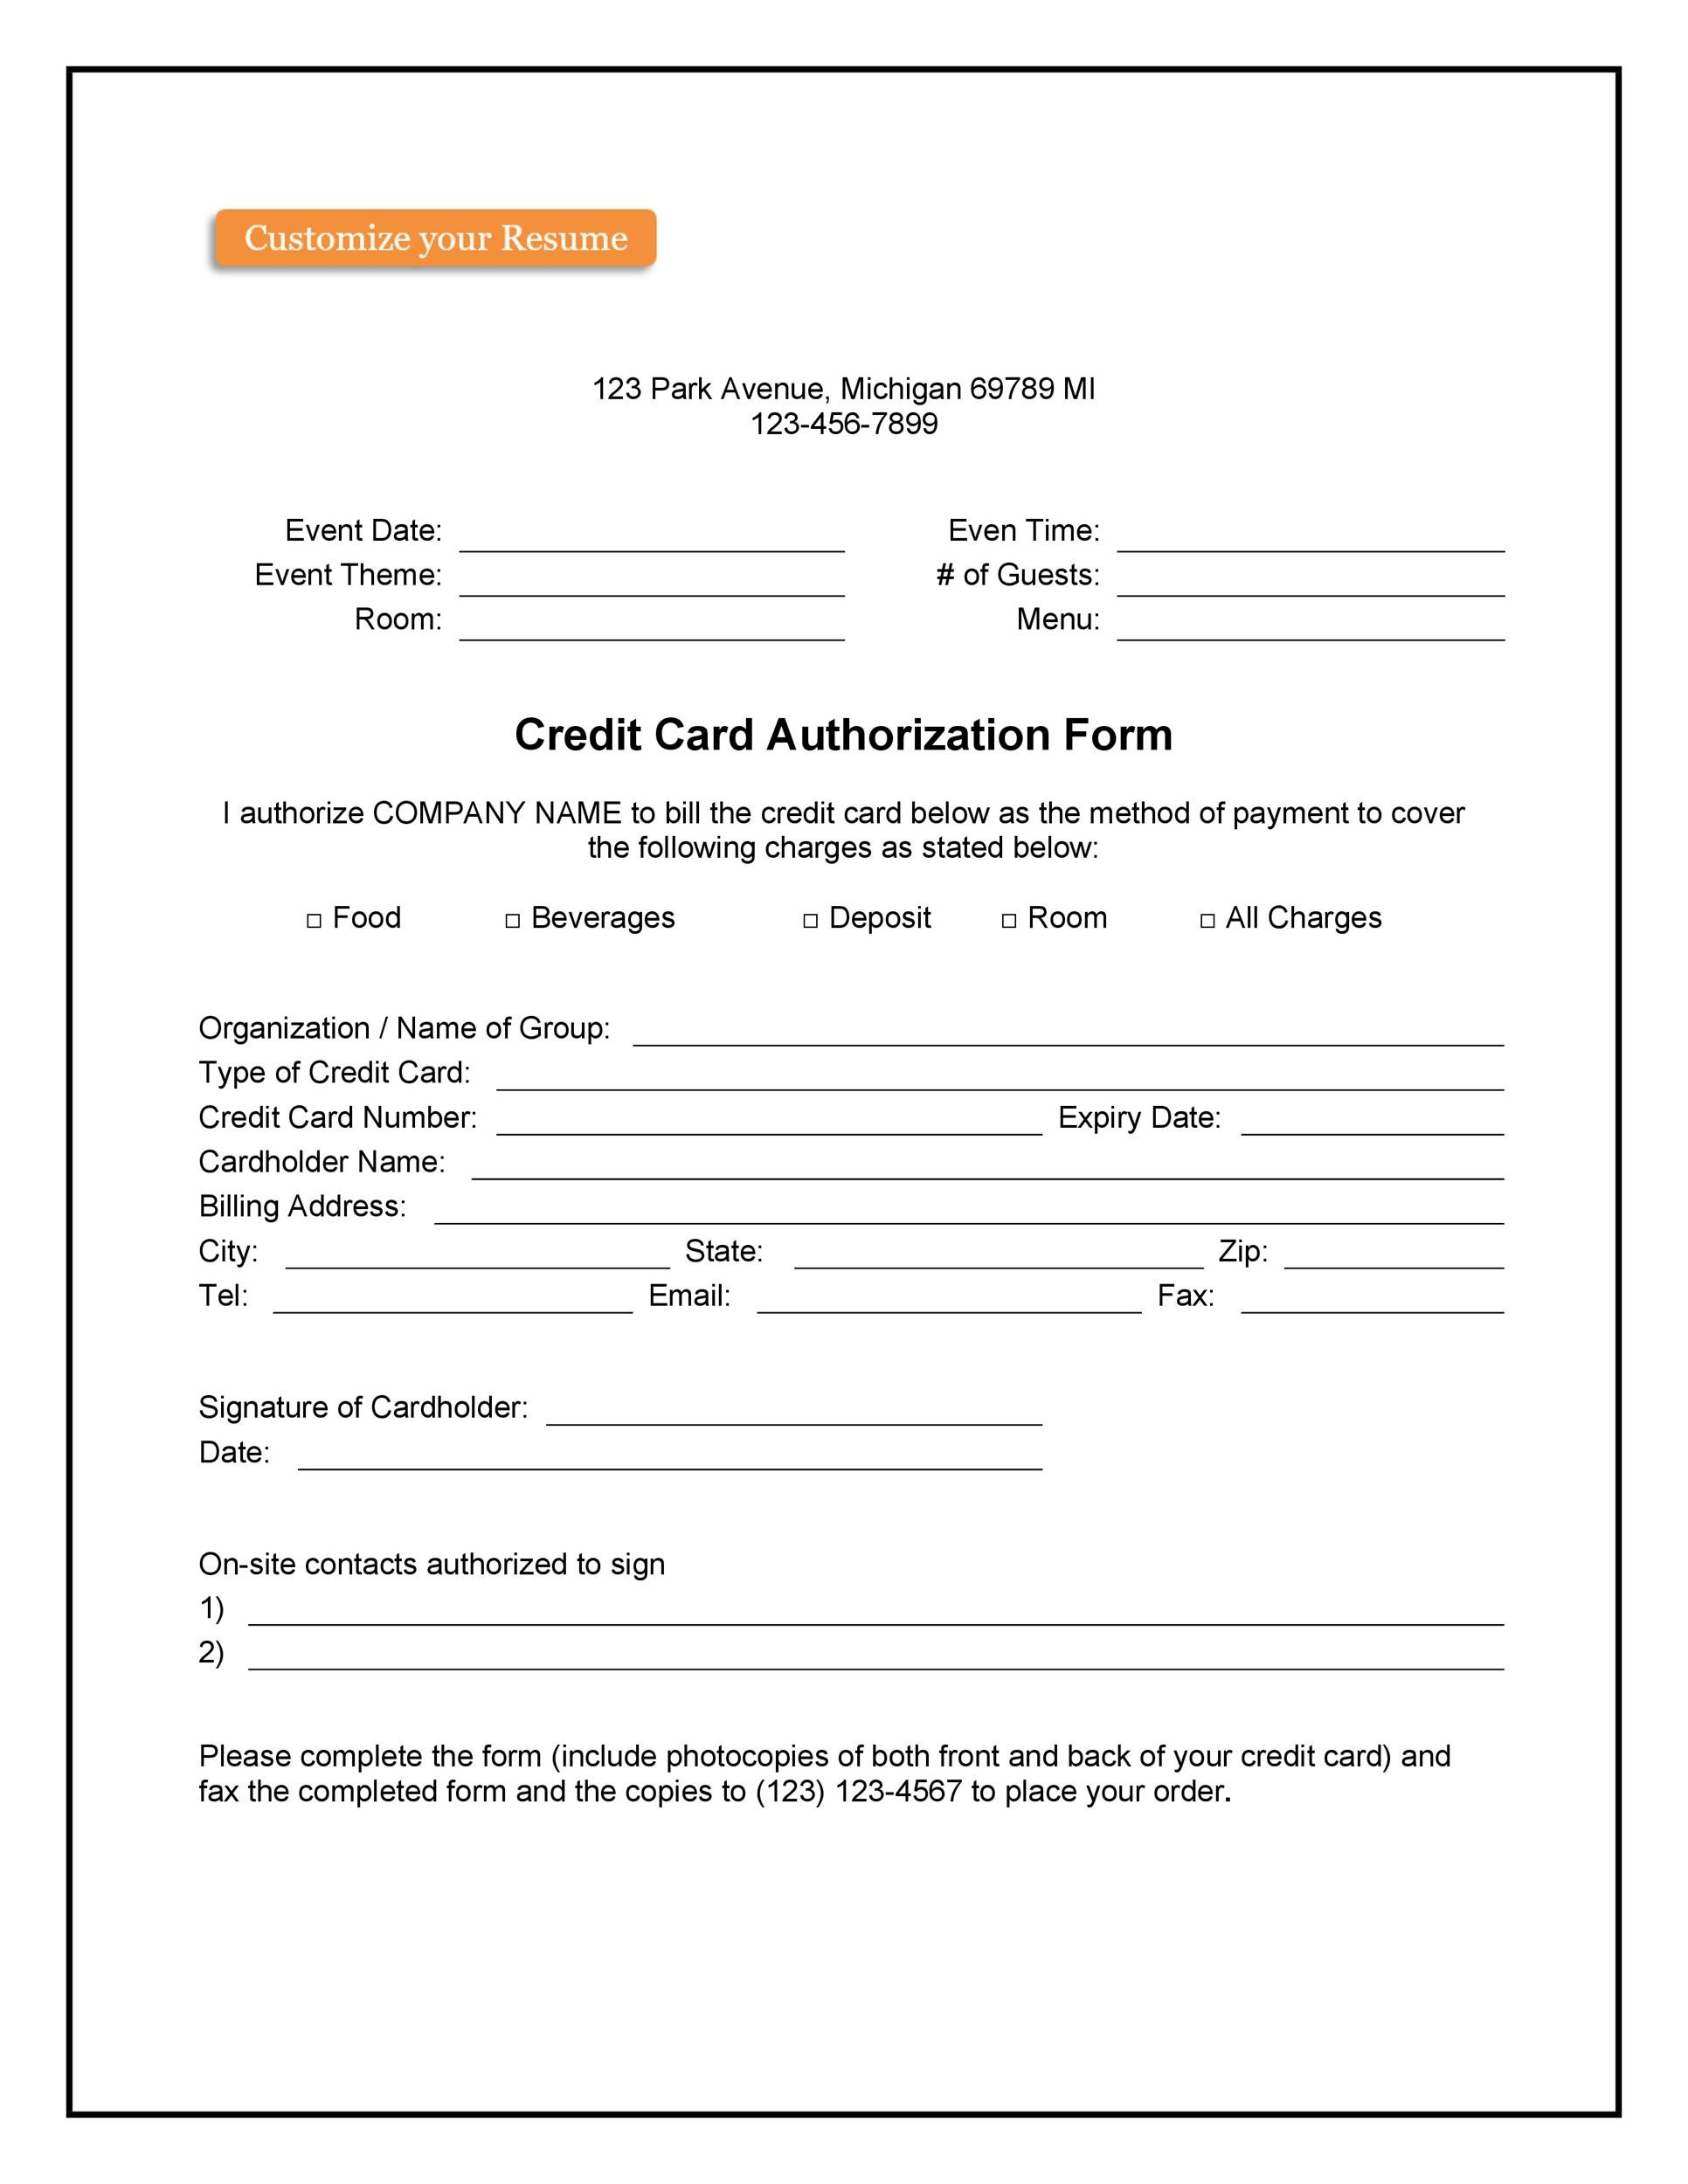 Free credit card authorization form template 26